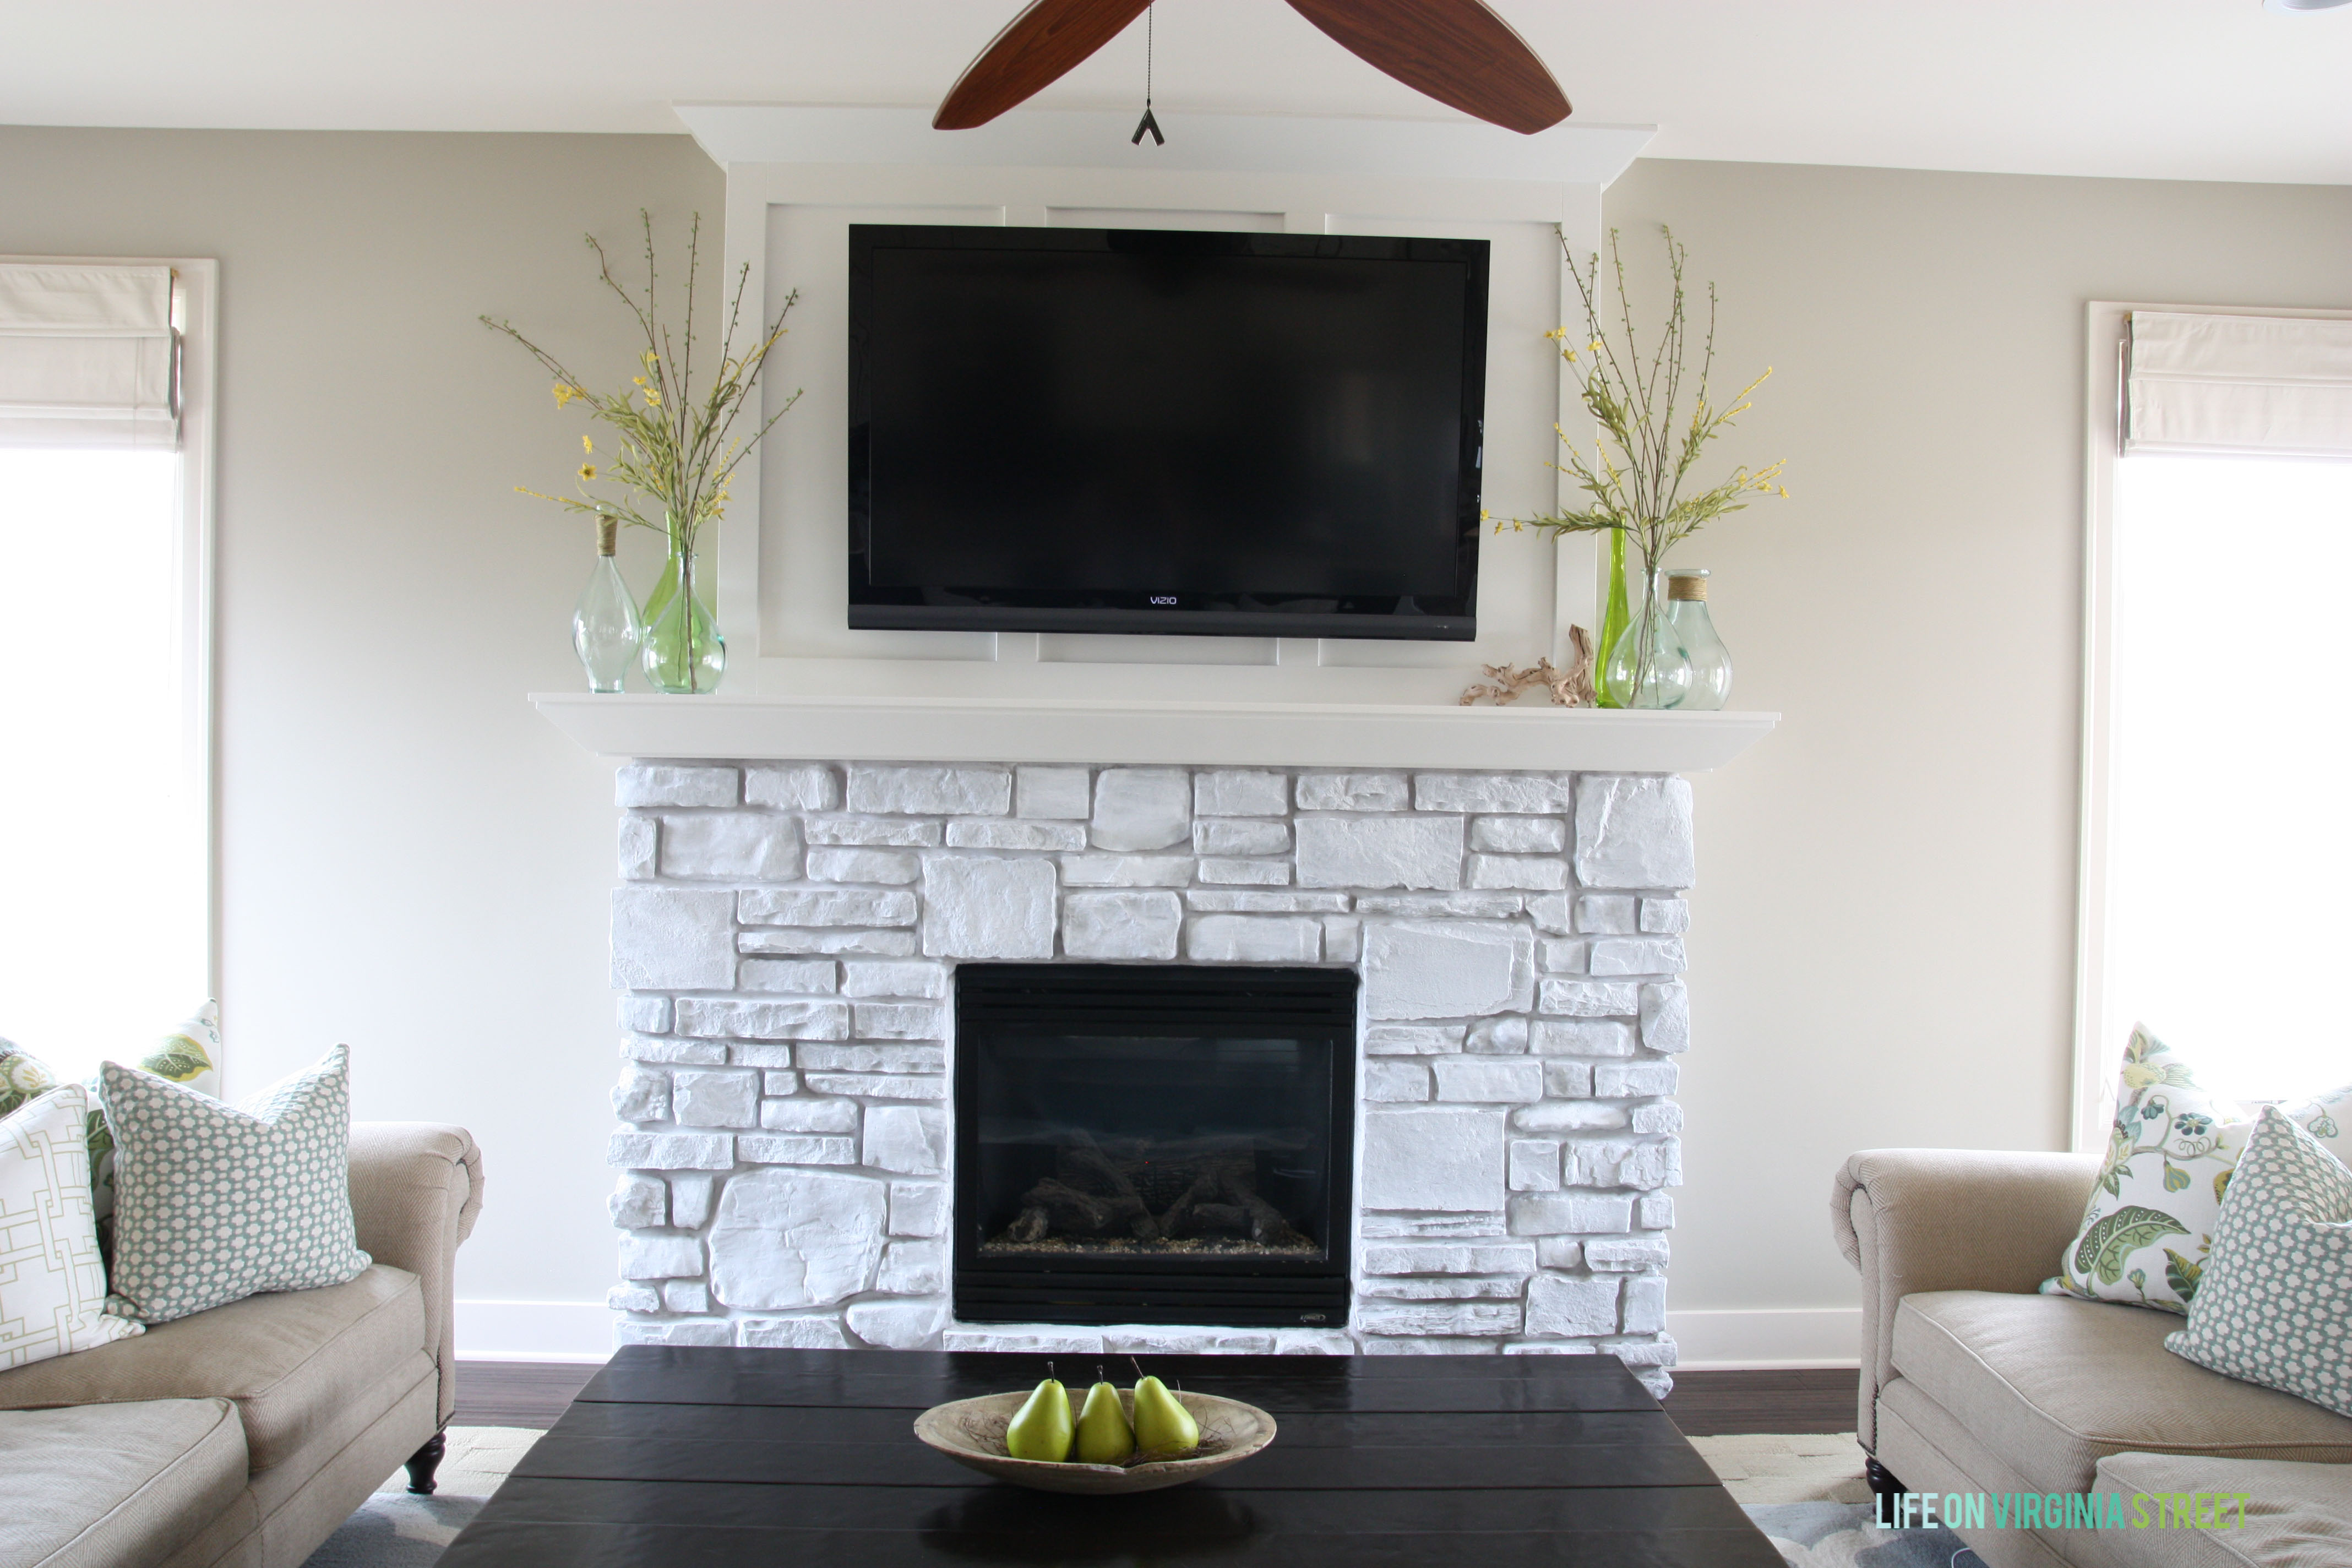 What to Expect from White Stone Fireplace : White Stone Fireplace. White stone fireplace. white